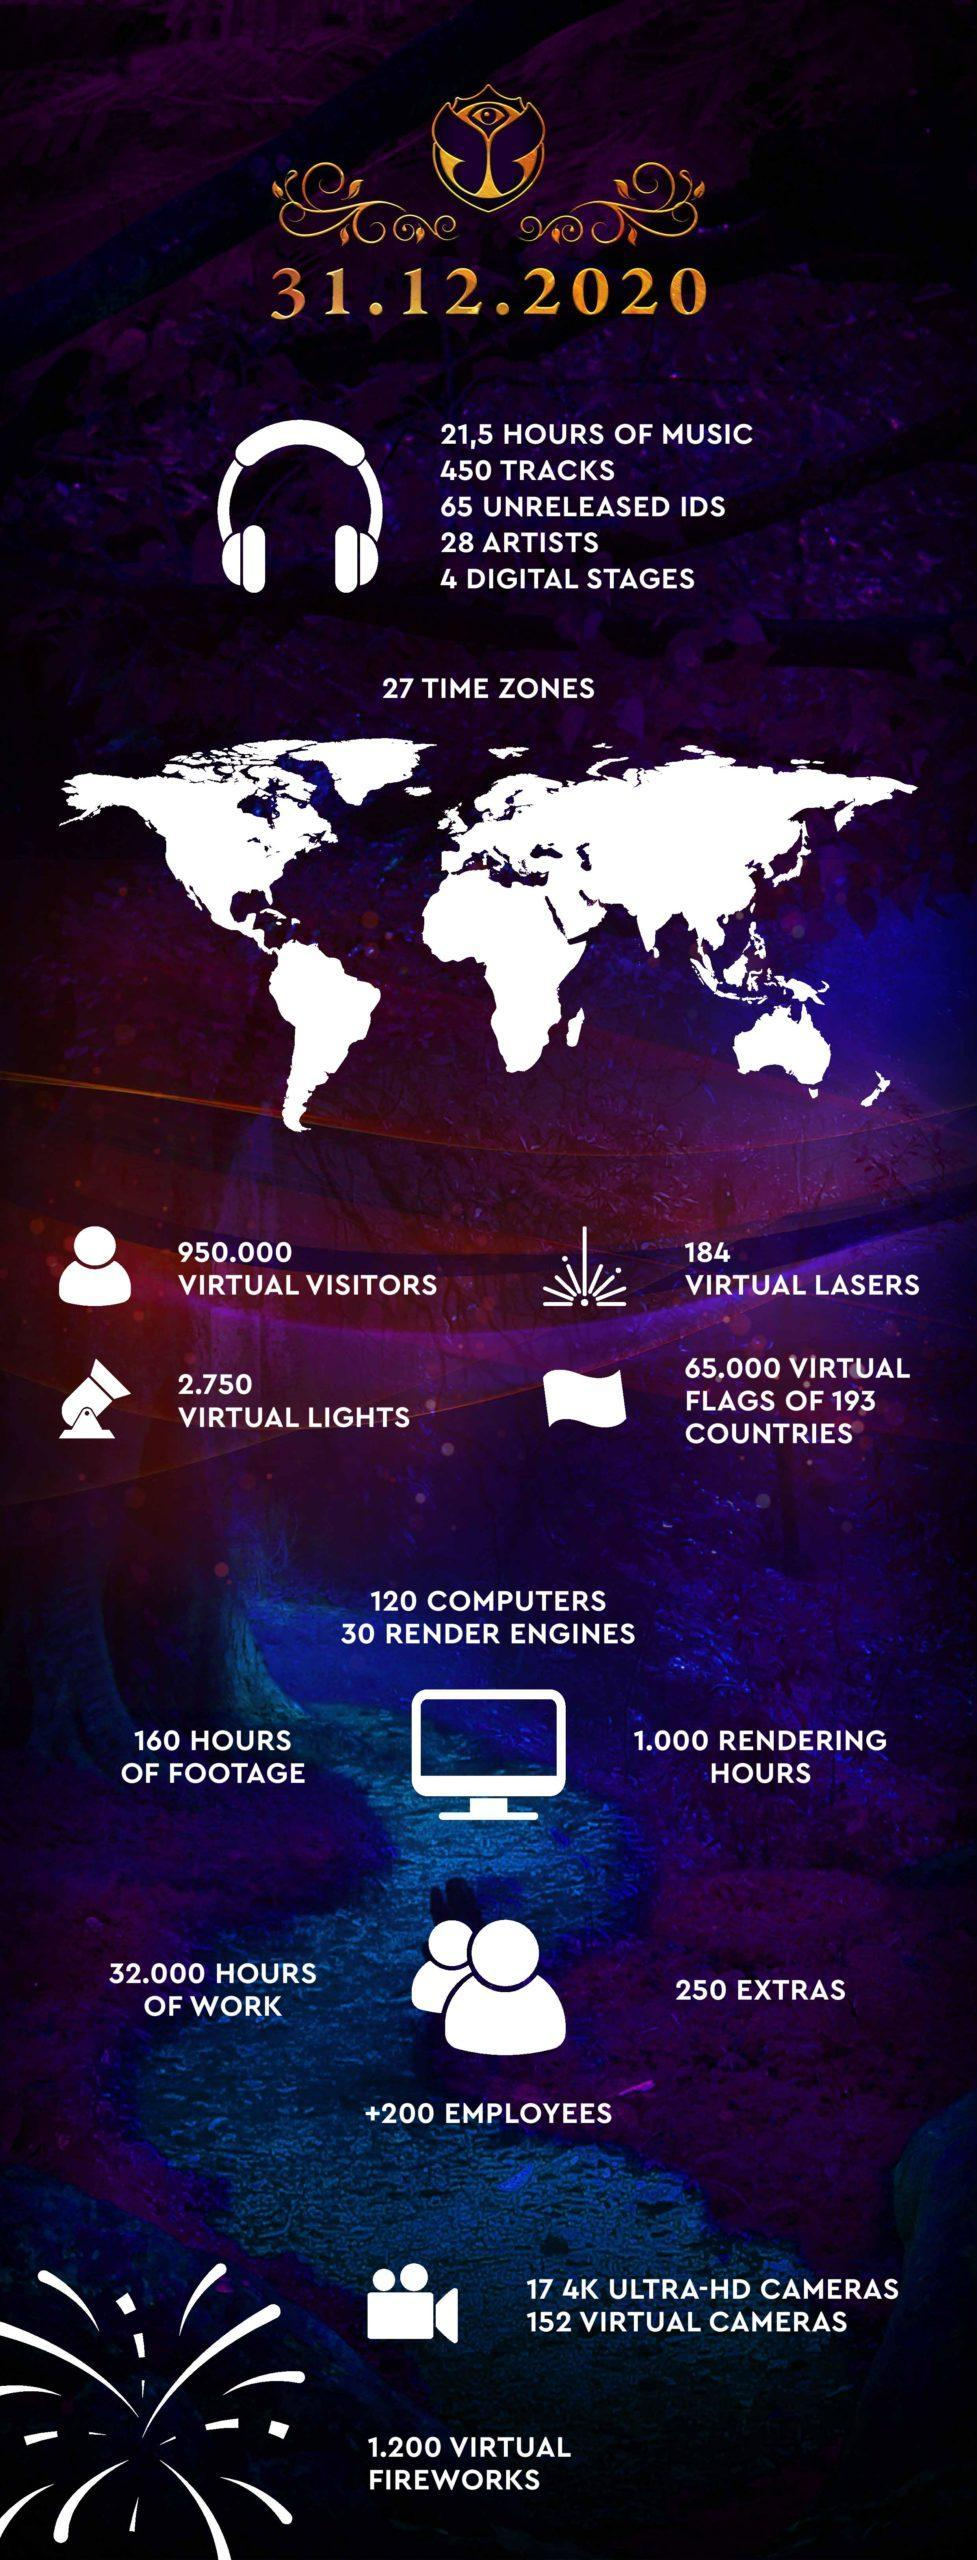 Tomorrowland 31.12.2020 Infographic